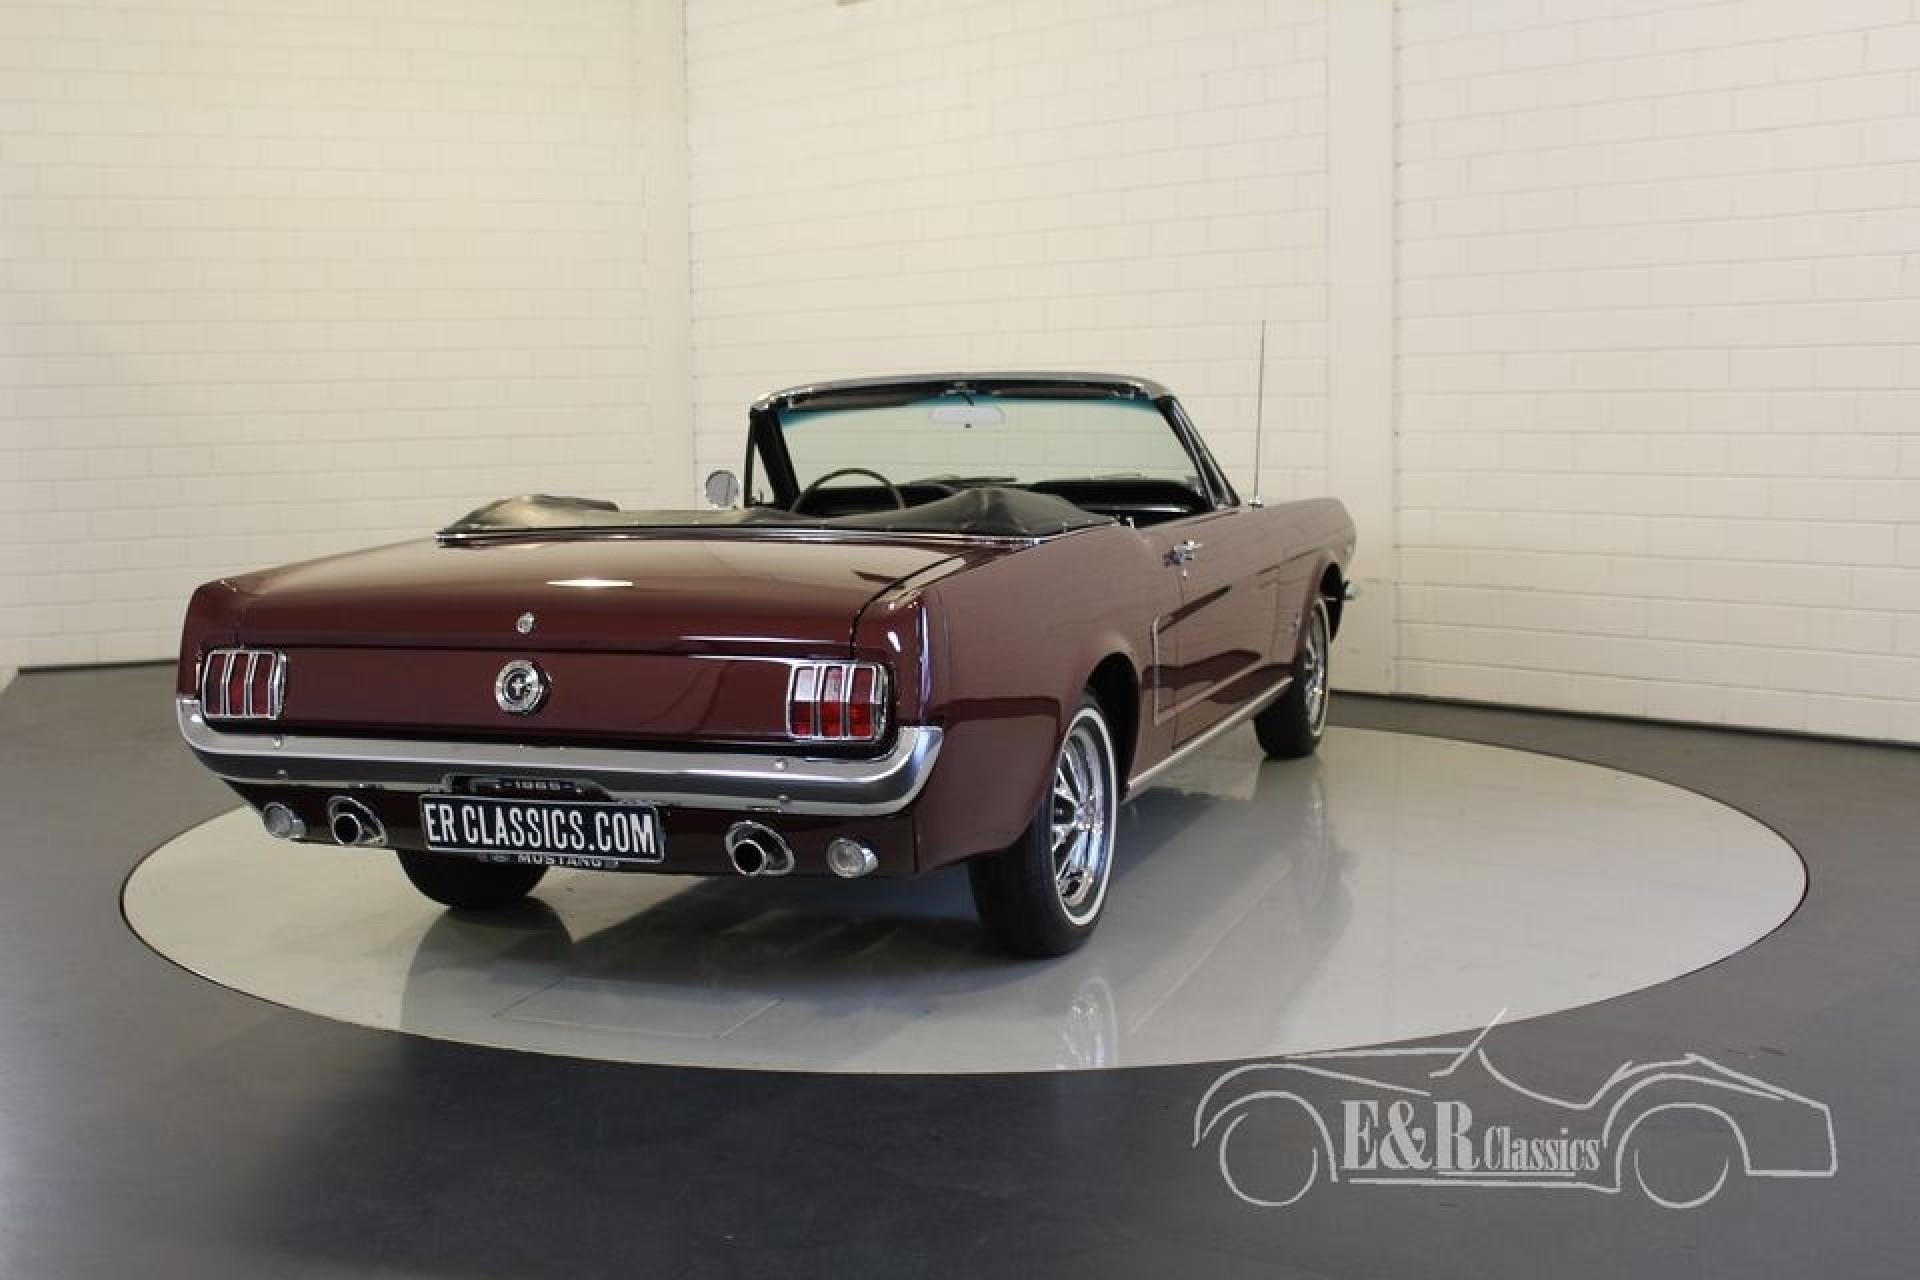 ford mustang cabriolet 1964 v8 zum kauf bei erclassics. Black Bedroom Furniture Sets. Home Design Ideas